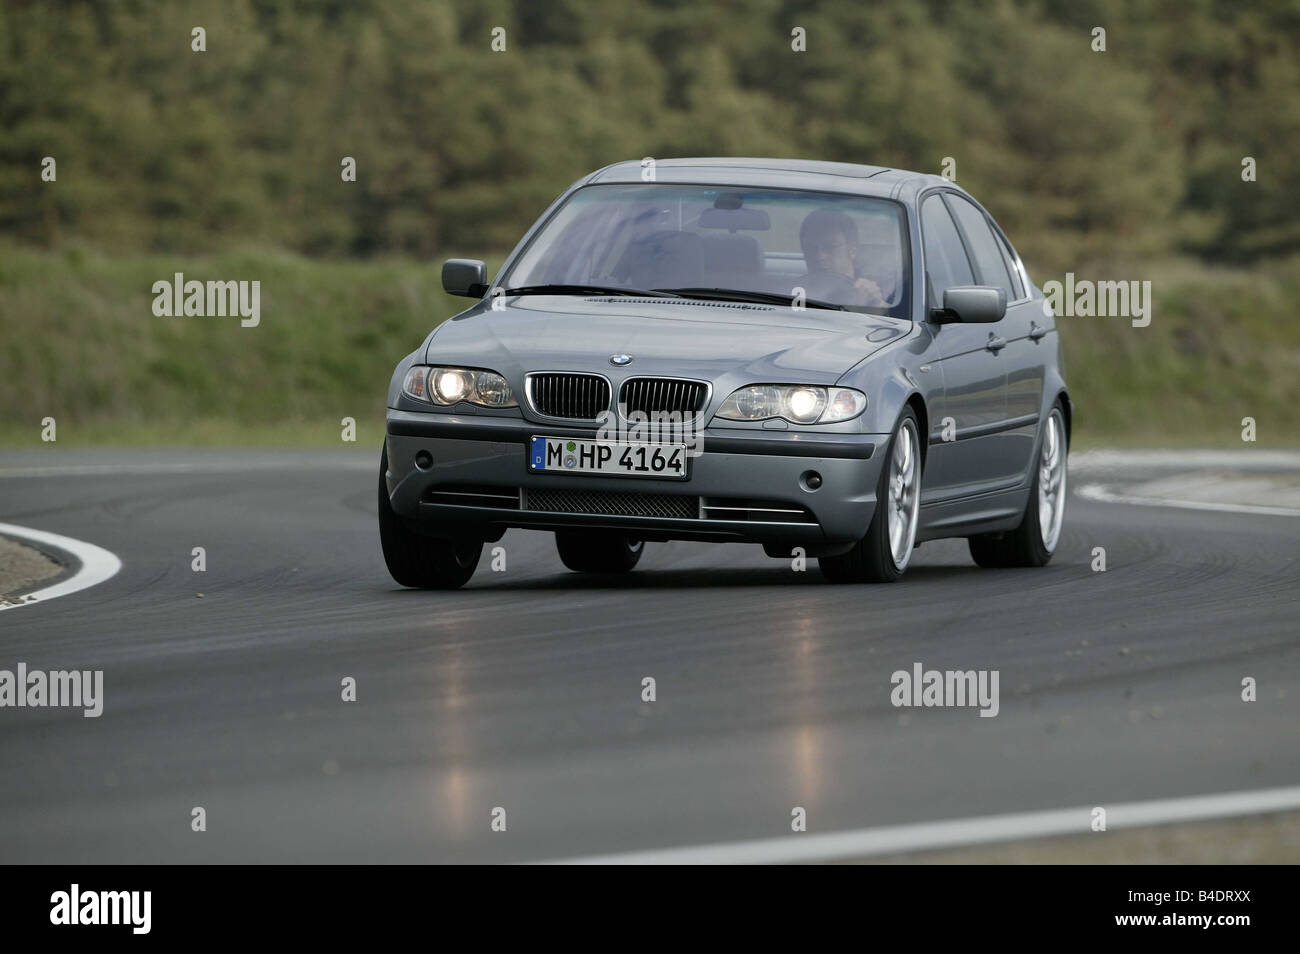 bmw 330i stockfotos bmw 330i bilder alamy. Black Bedroom Furniture Sets. Home Design Ideas